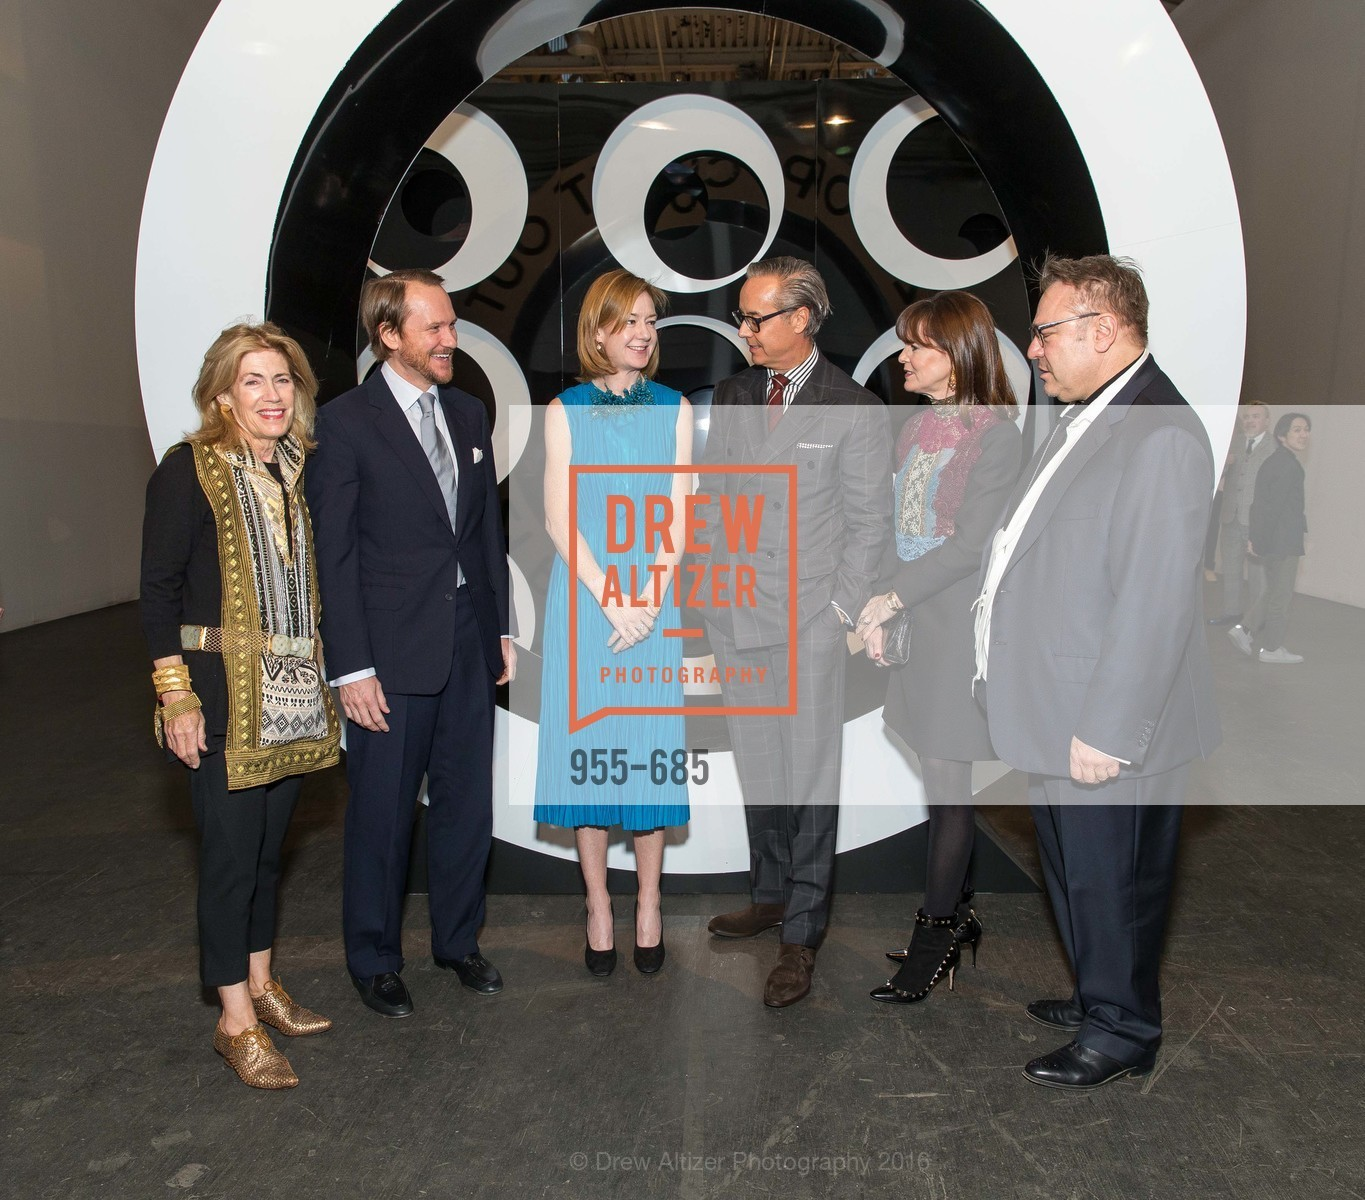 Cathy Topham, Roth Martin, Katie Paige, Douglas Durkin, Allison Speer, Stanlee Gatti, FOG Design+Art Preview Gala, Fort Mason Center Festival Pavilion, January 13th, 2016,Drew Altizer, Drew Altizer Photography, full-service agency, private events, San Francisco photographer, photographer california